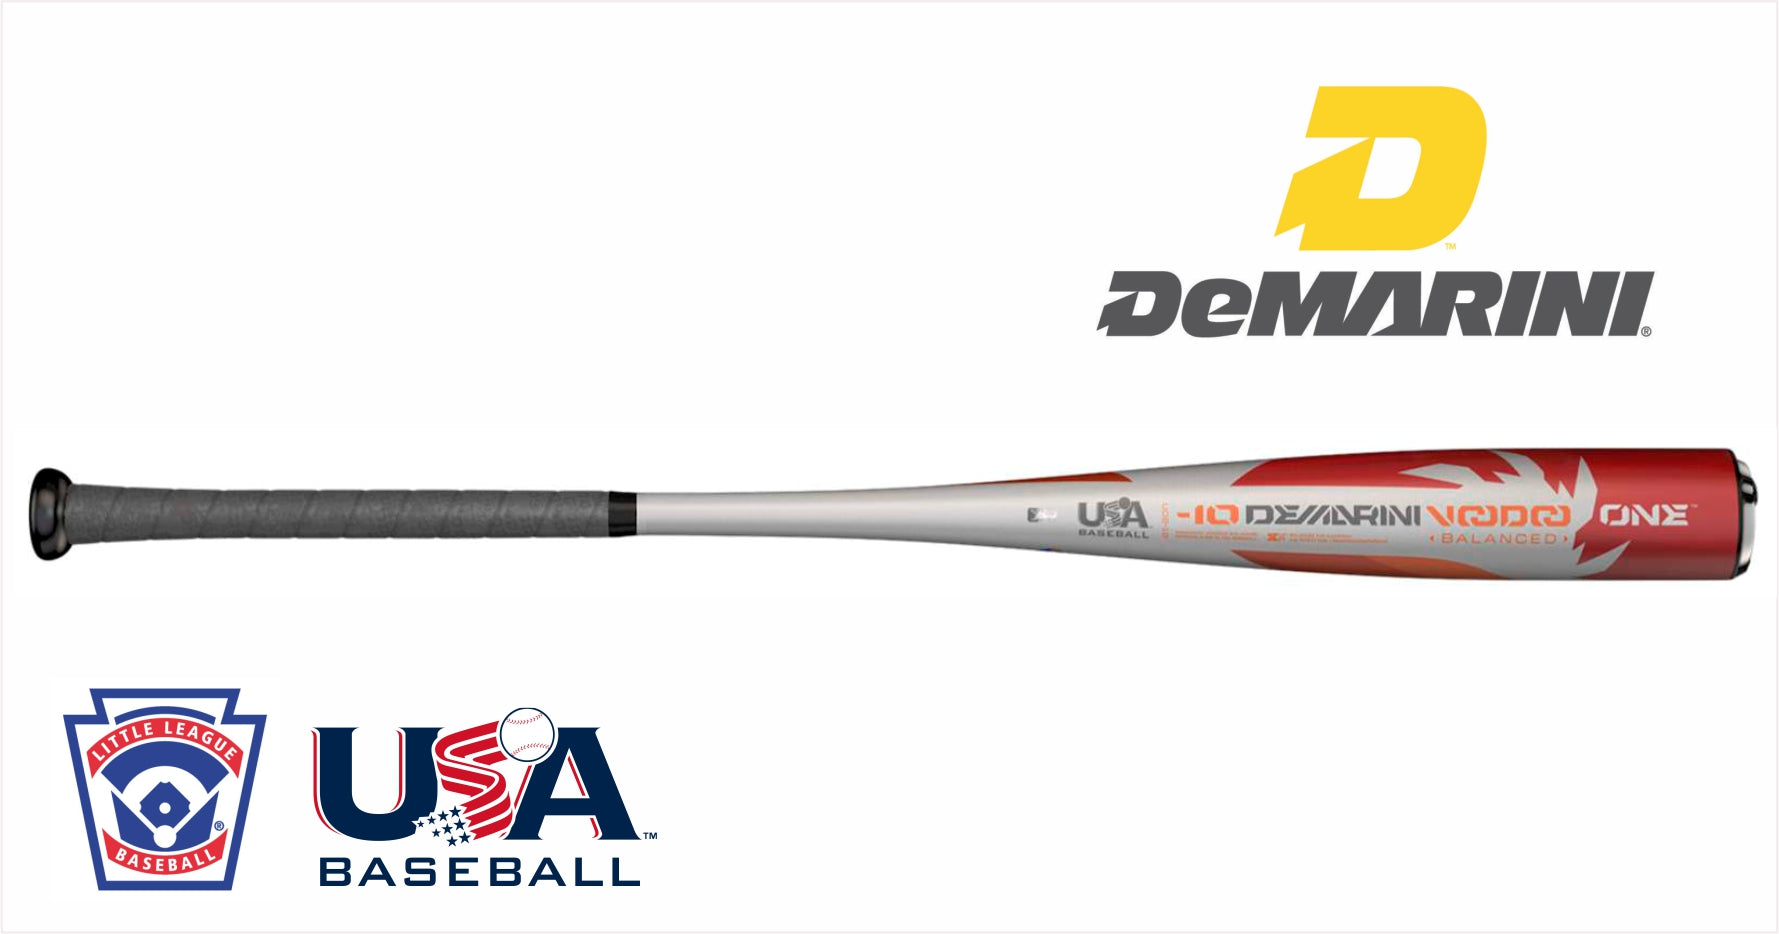 2018 (USA Baseball) DeMarini Voodoo One Balanced 2 5 8 (-10) – Texas ... d7ec112a73